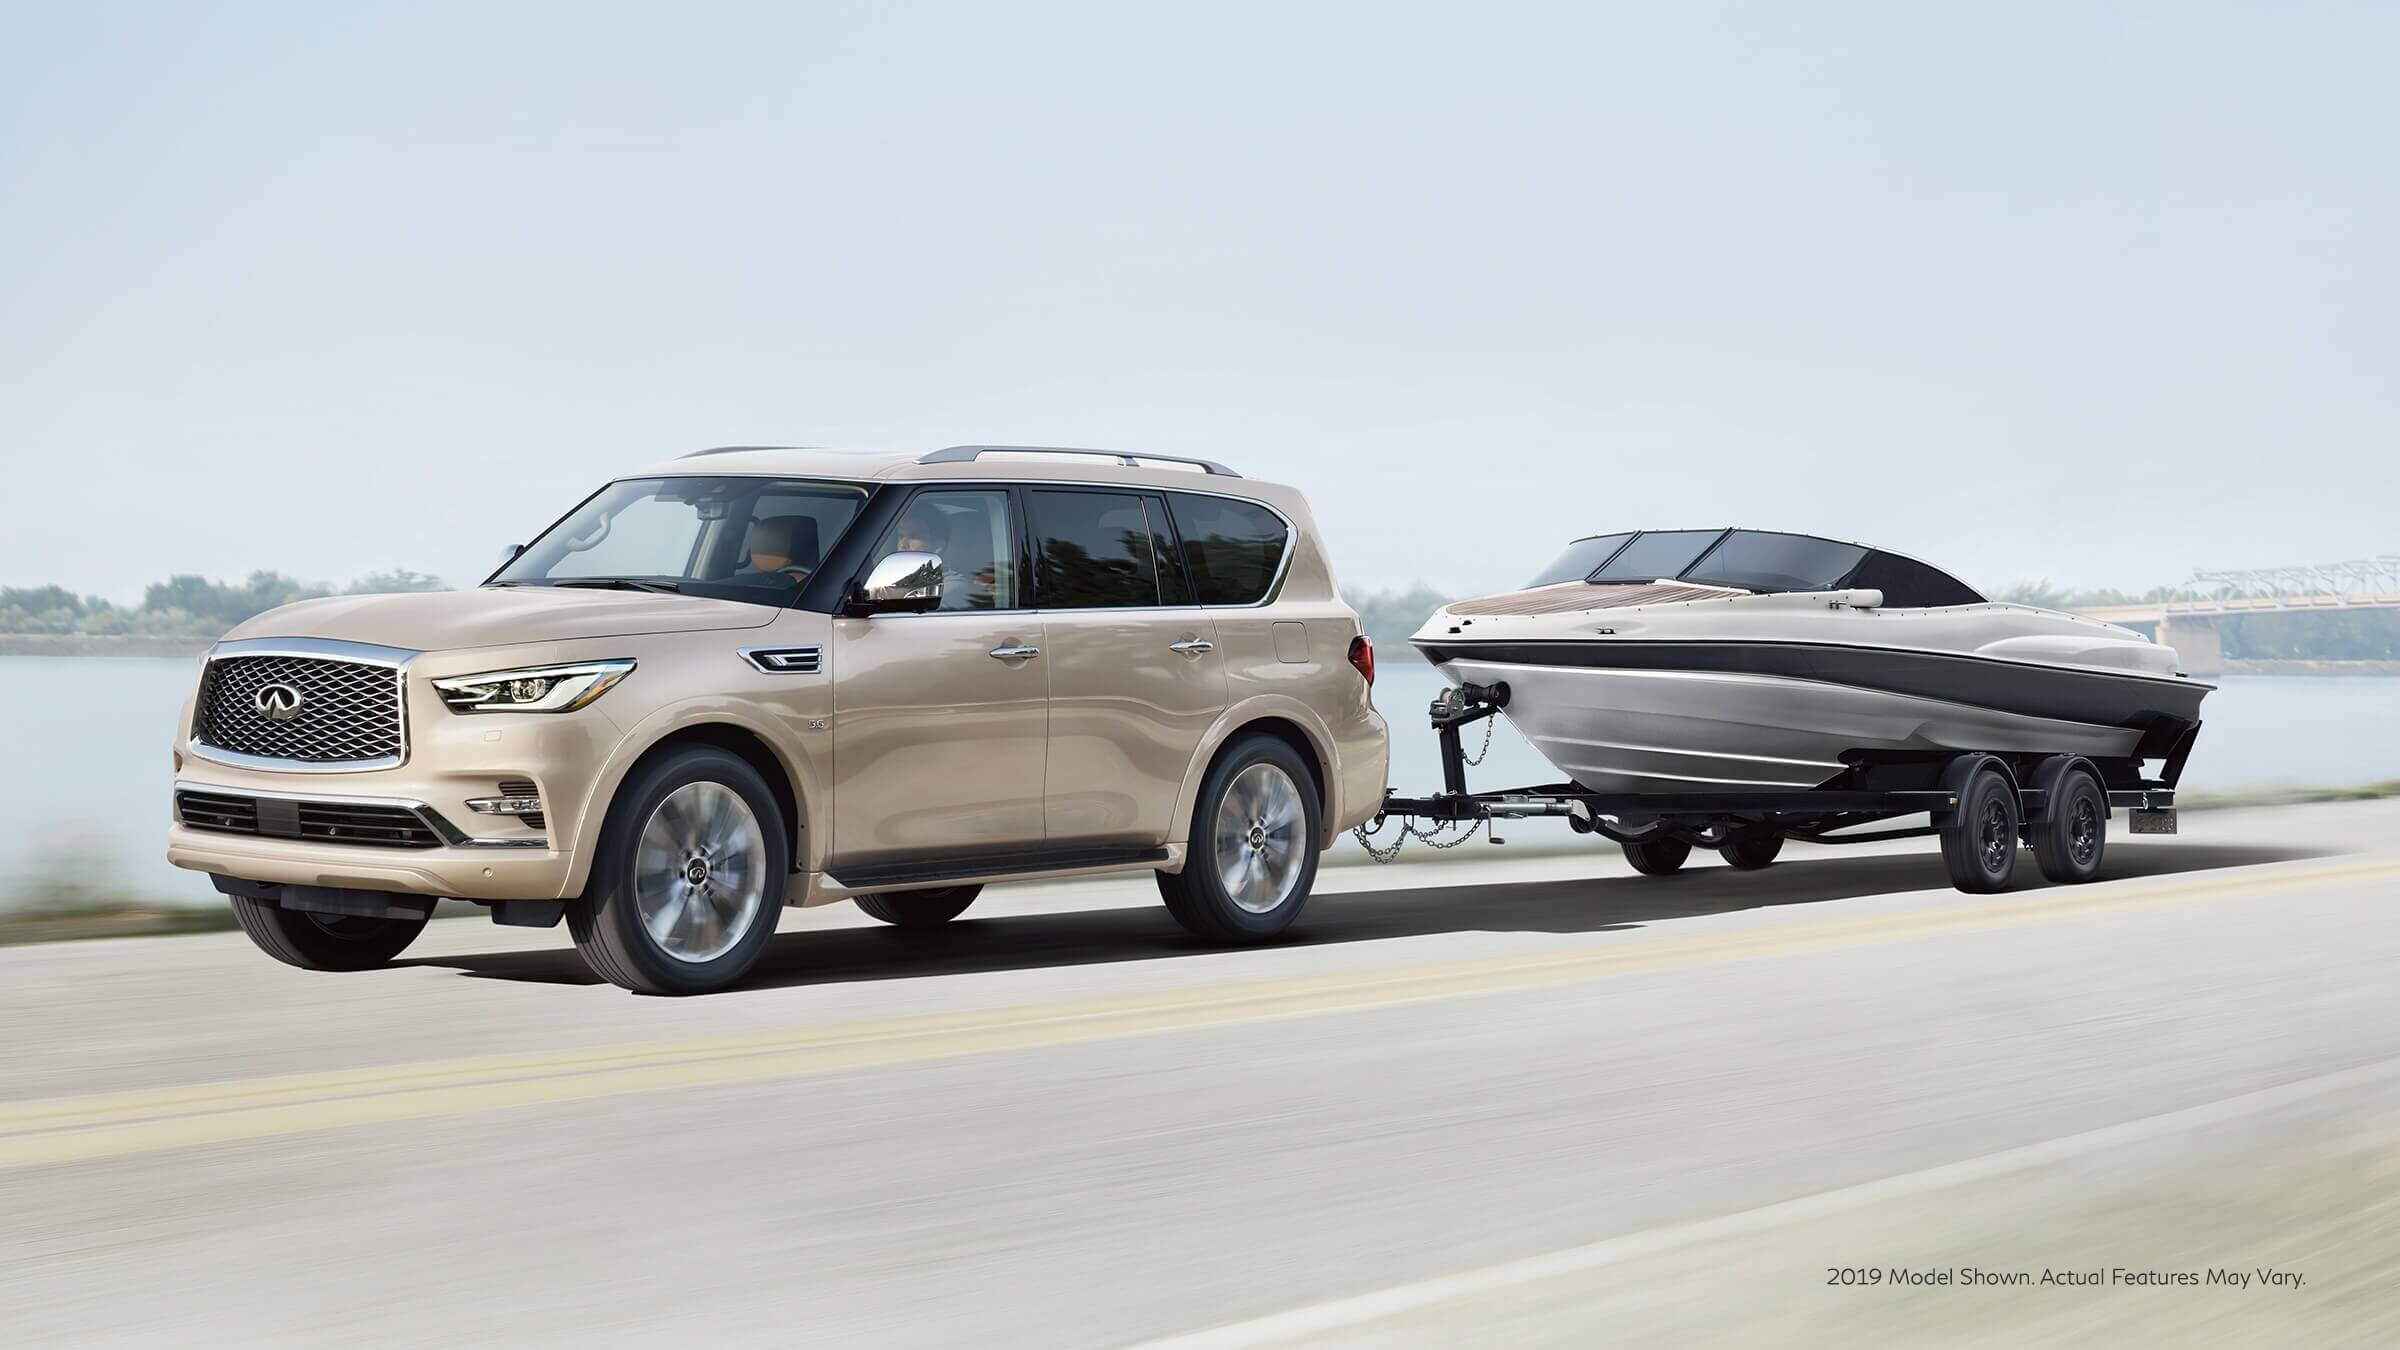 2021 Infiniti Qx80 with 5.6 liter v8 engine